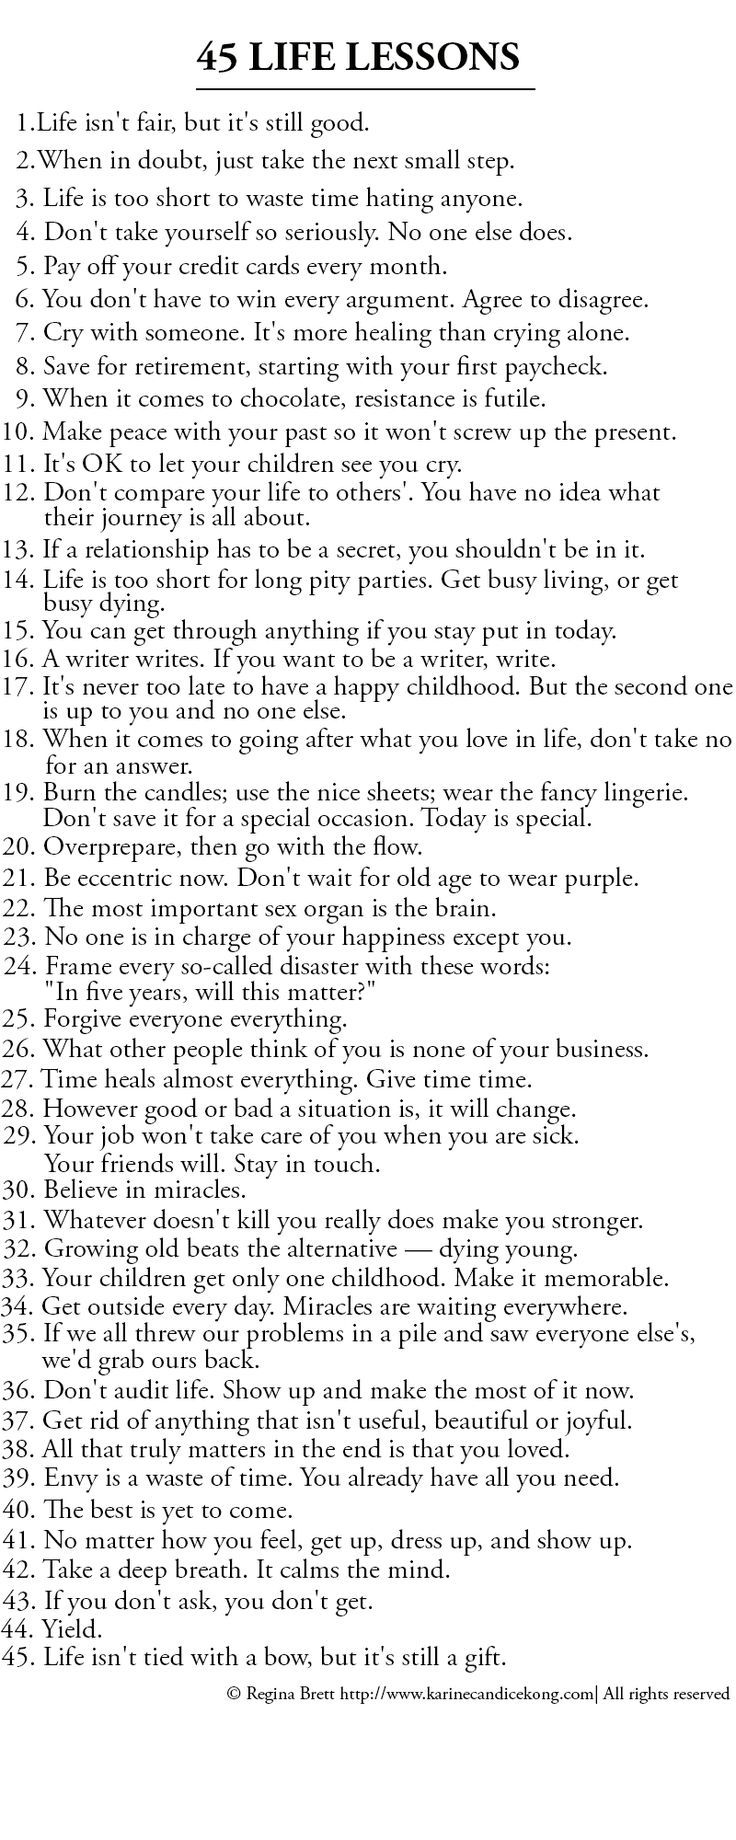 Positive Quotes : List of 45 Great life lessons to life by ...